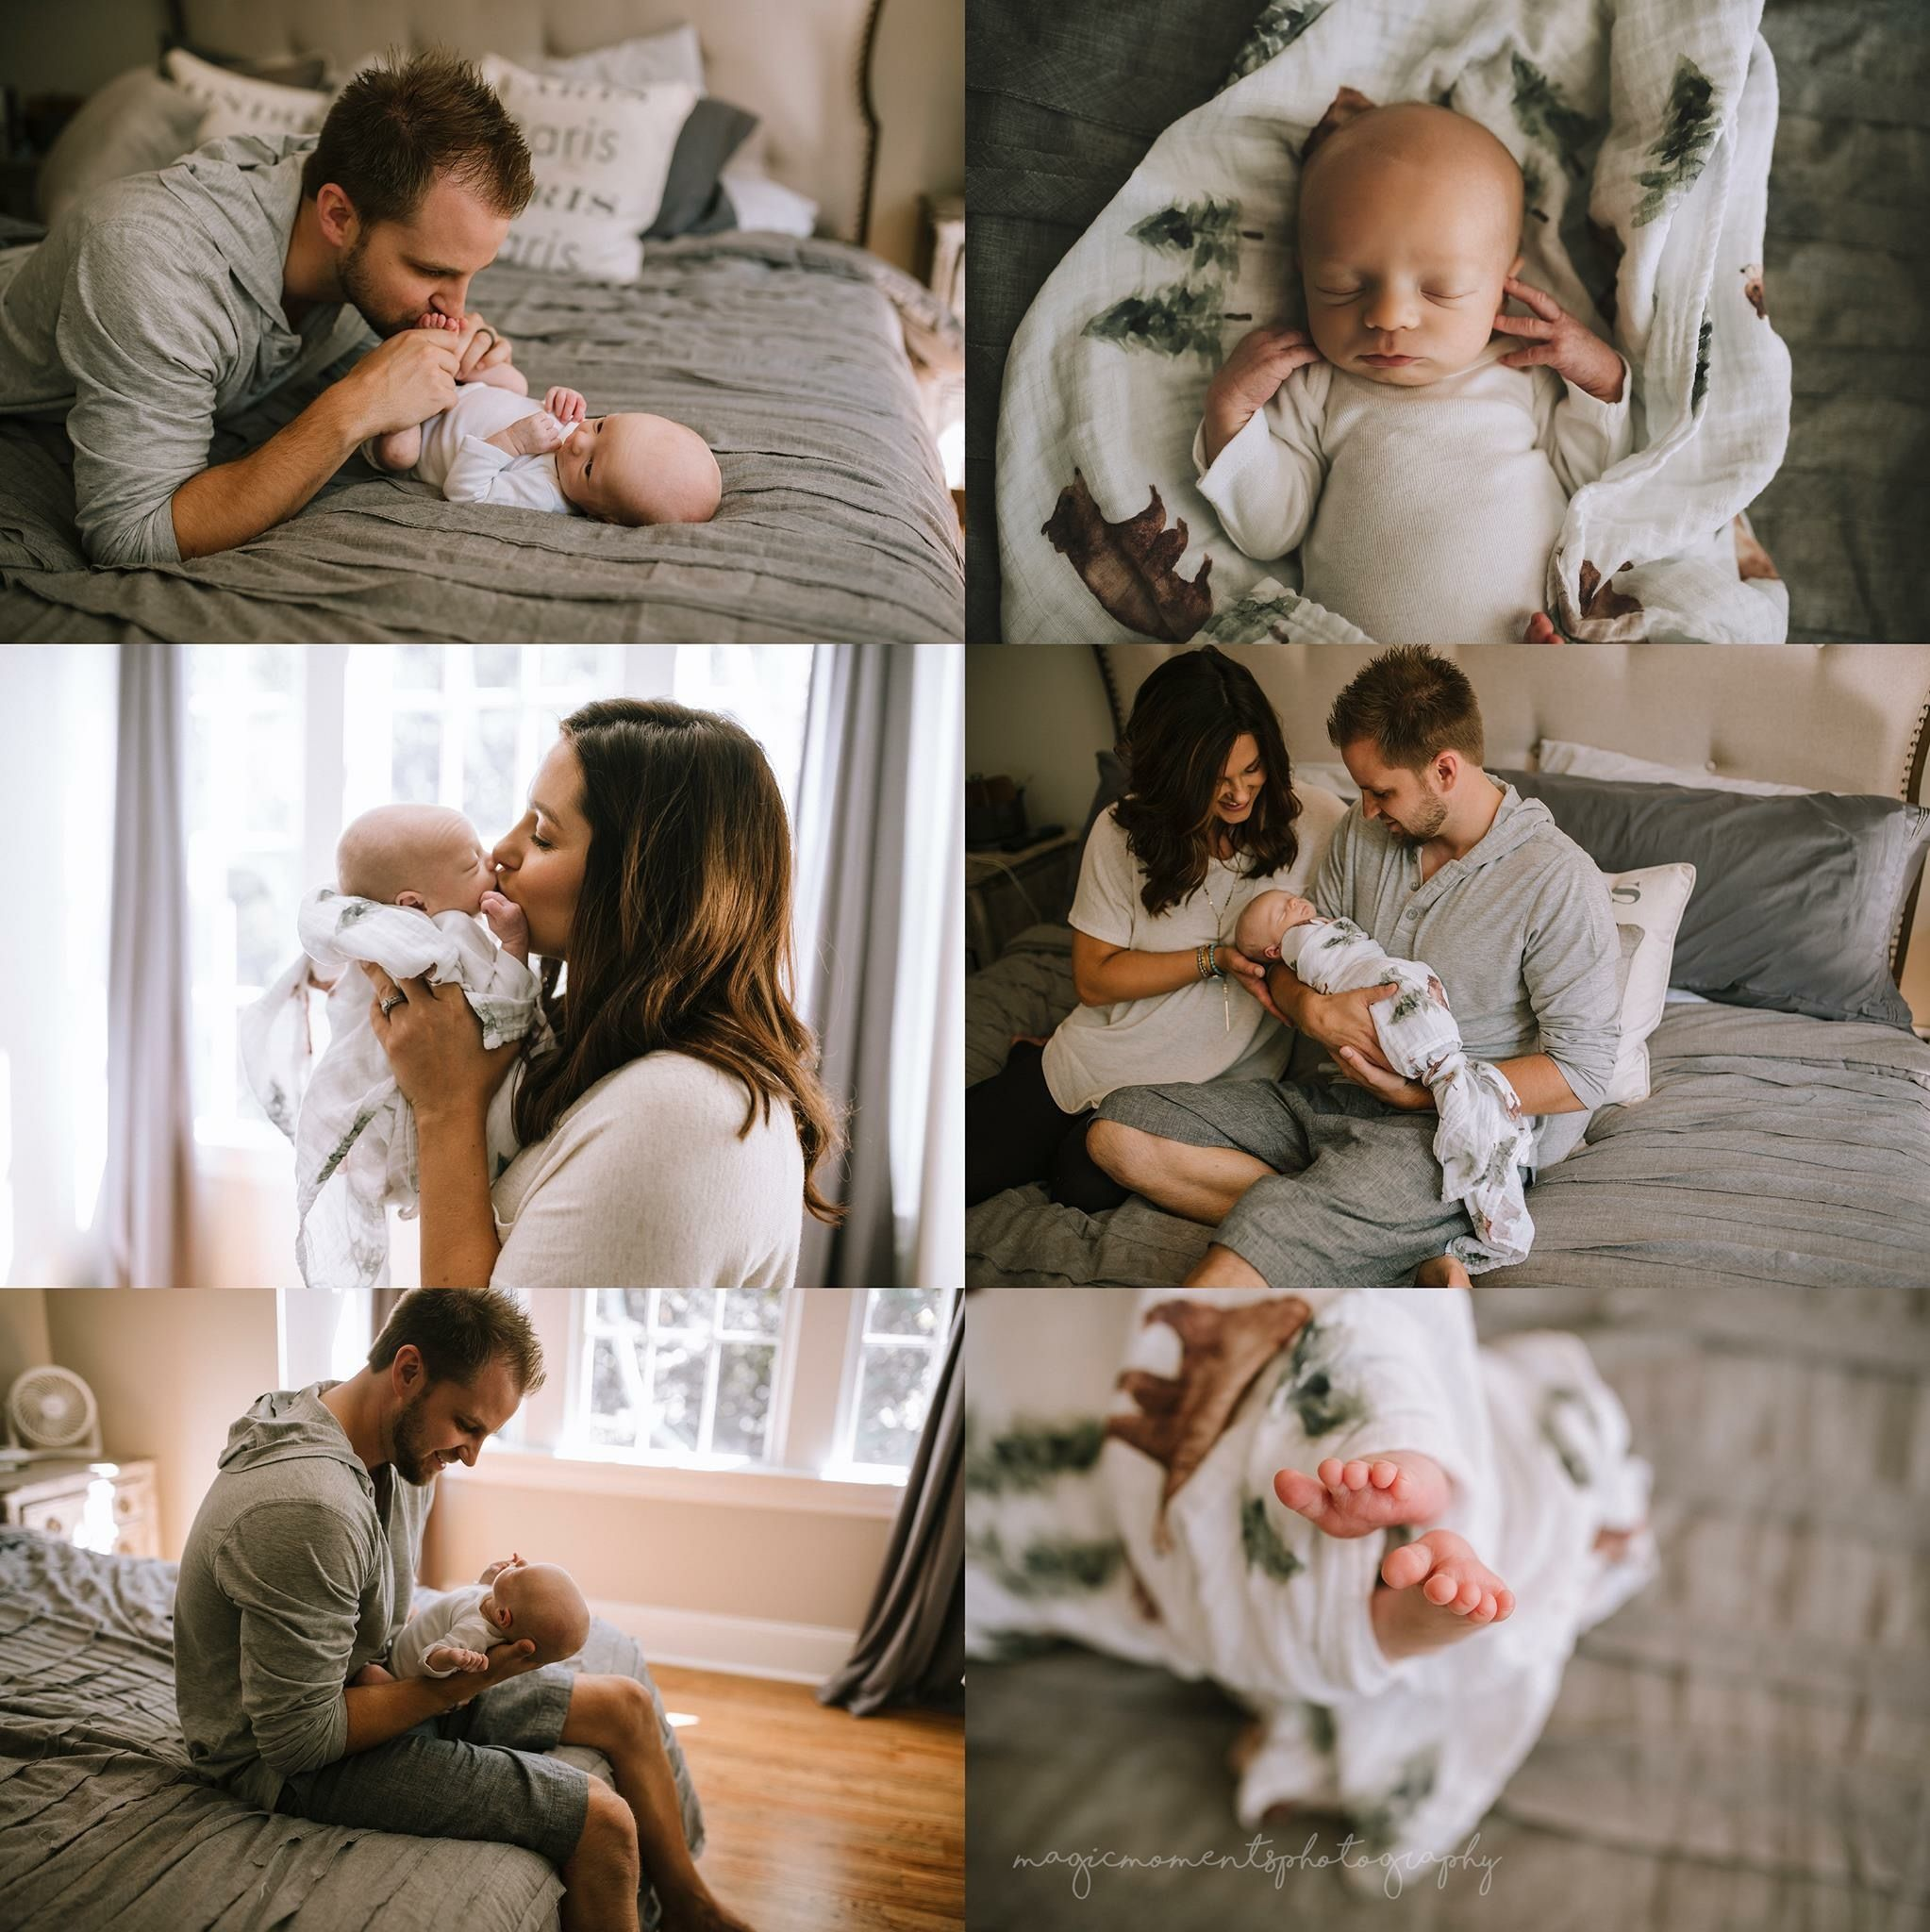 Newborn lifestyle session family love mommy and daddy babies happiness together in home ideas capture photography alabama film newborns